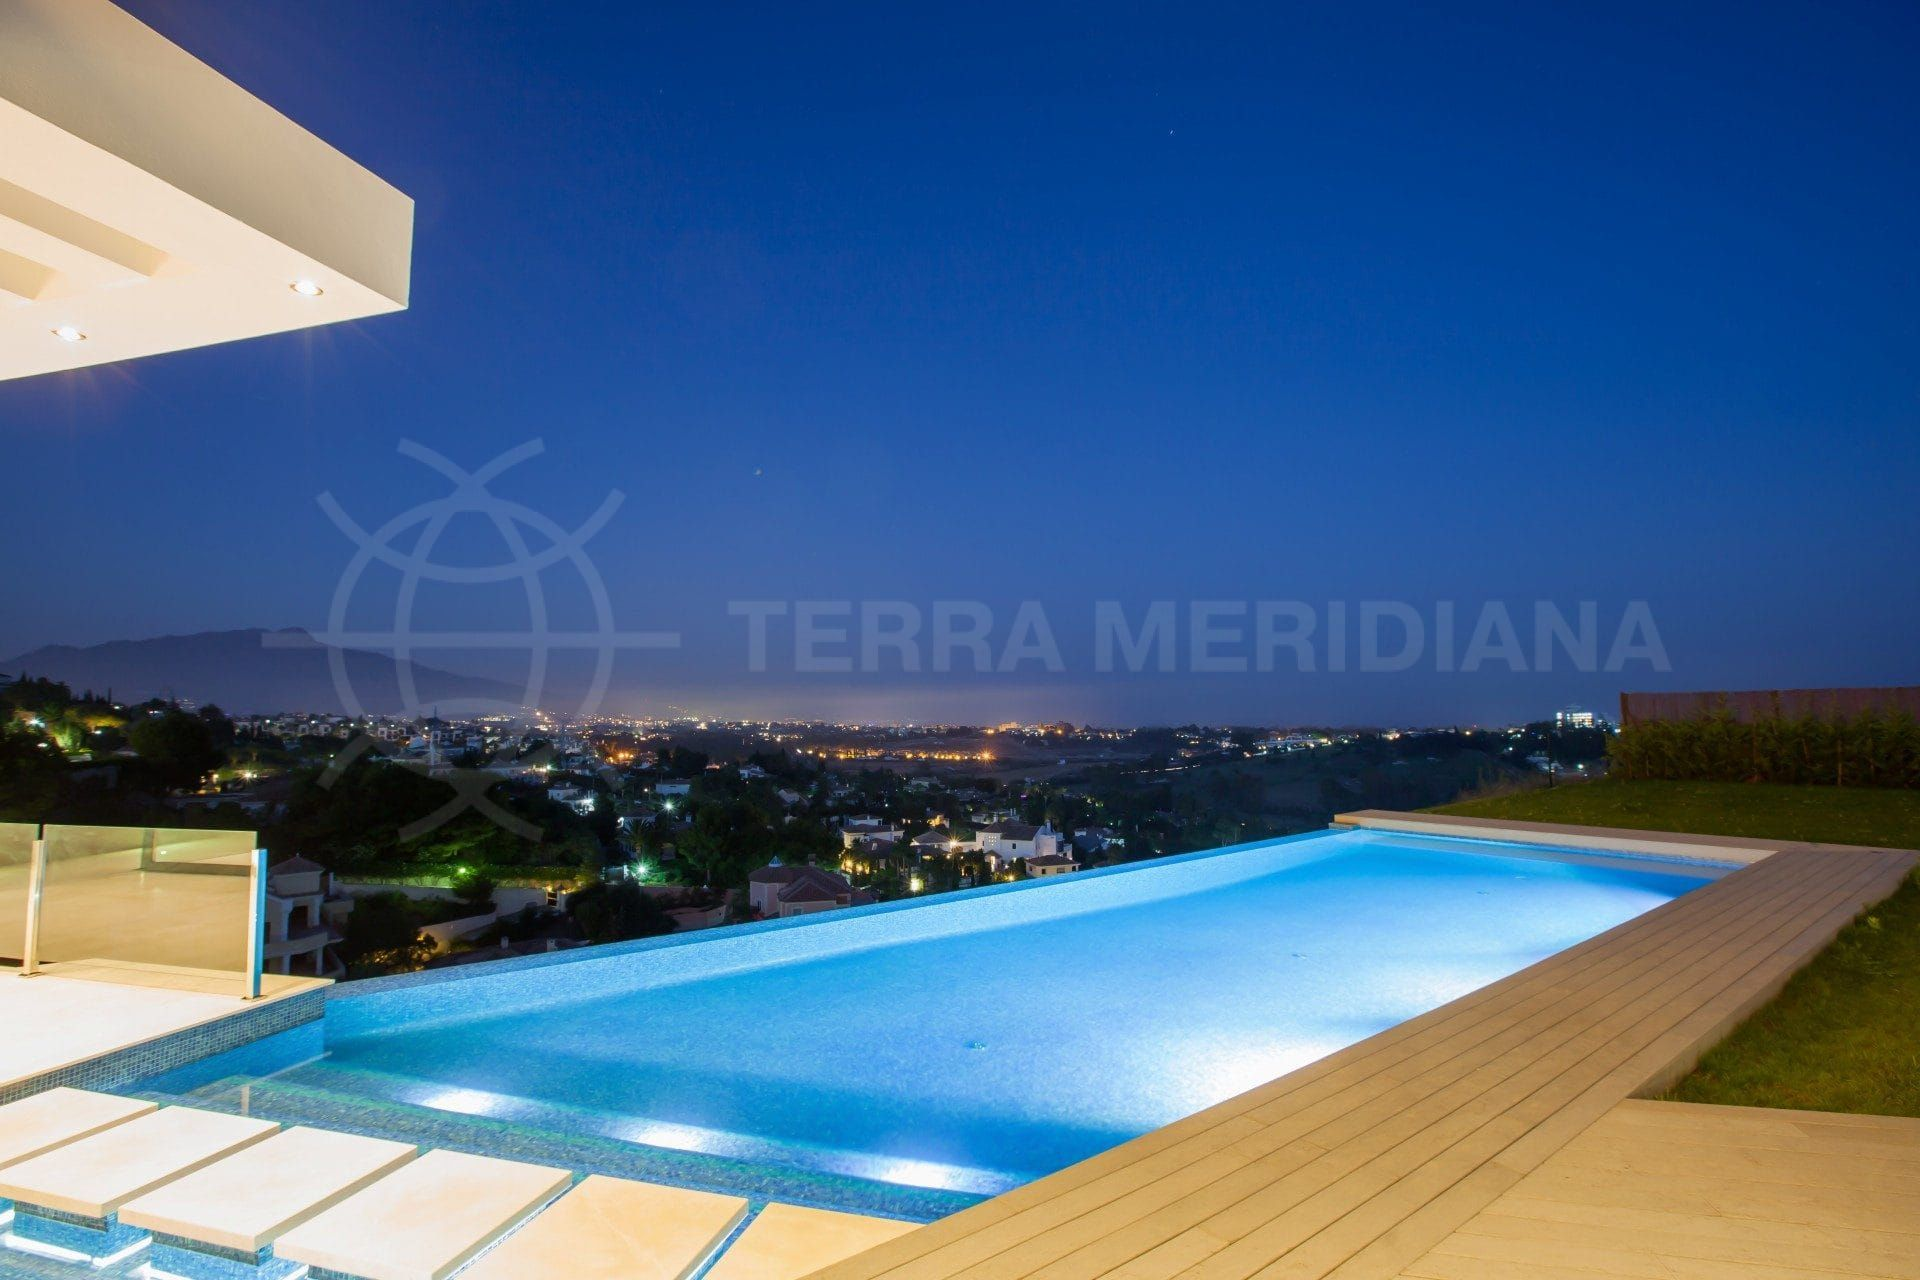 Marbella homes – modern or m2?